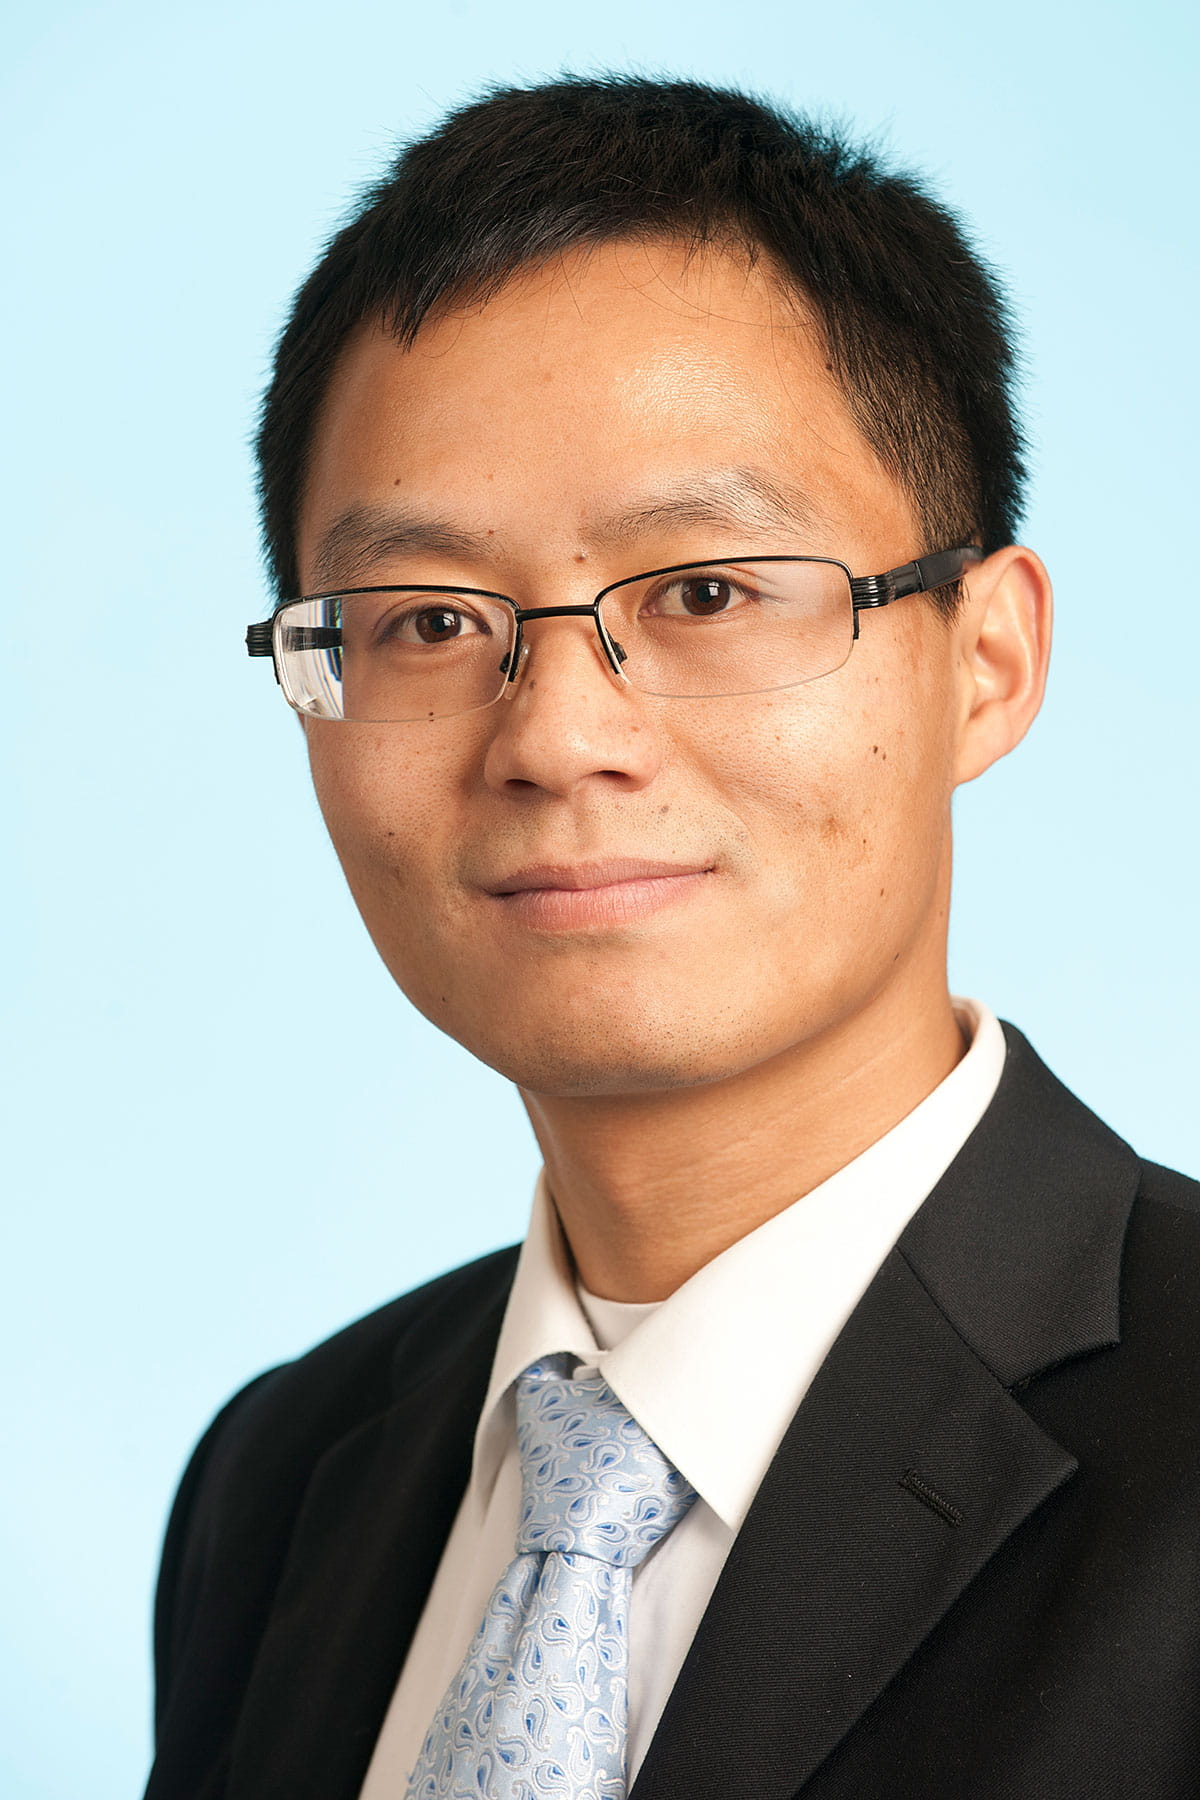 A photo of Nanhua Zhang.